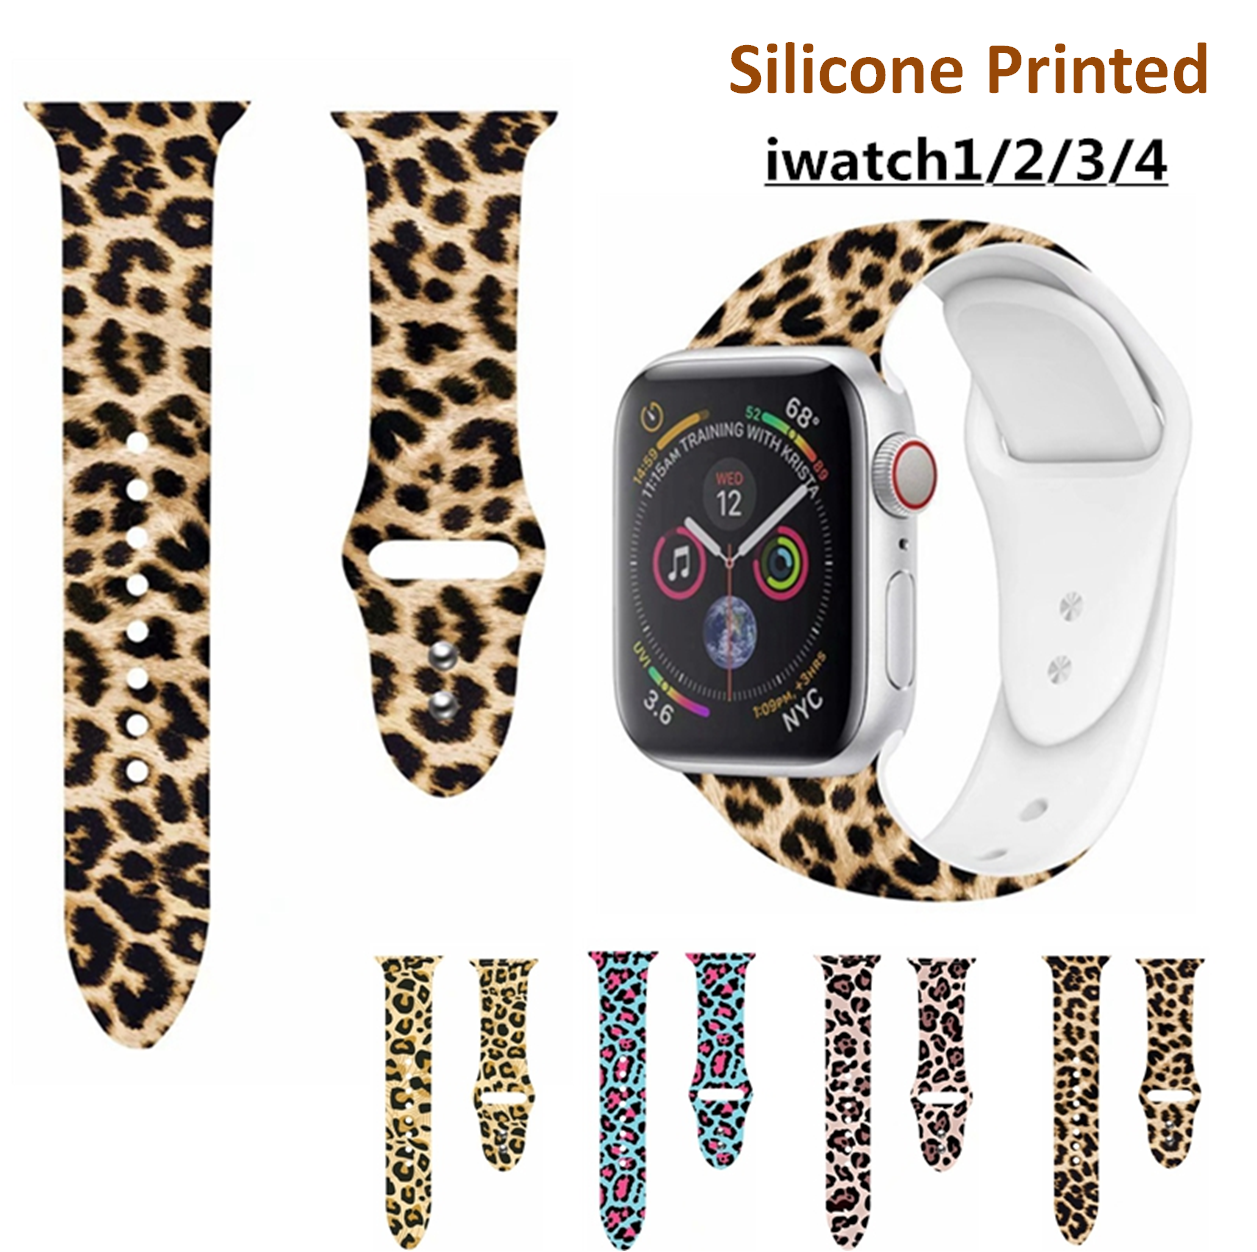 Apple Watch Band Floral Leopard Silicone Printed Replacement  Strap Bracelet Wristband For Iwatch 1 2 3 4 Four Style